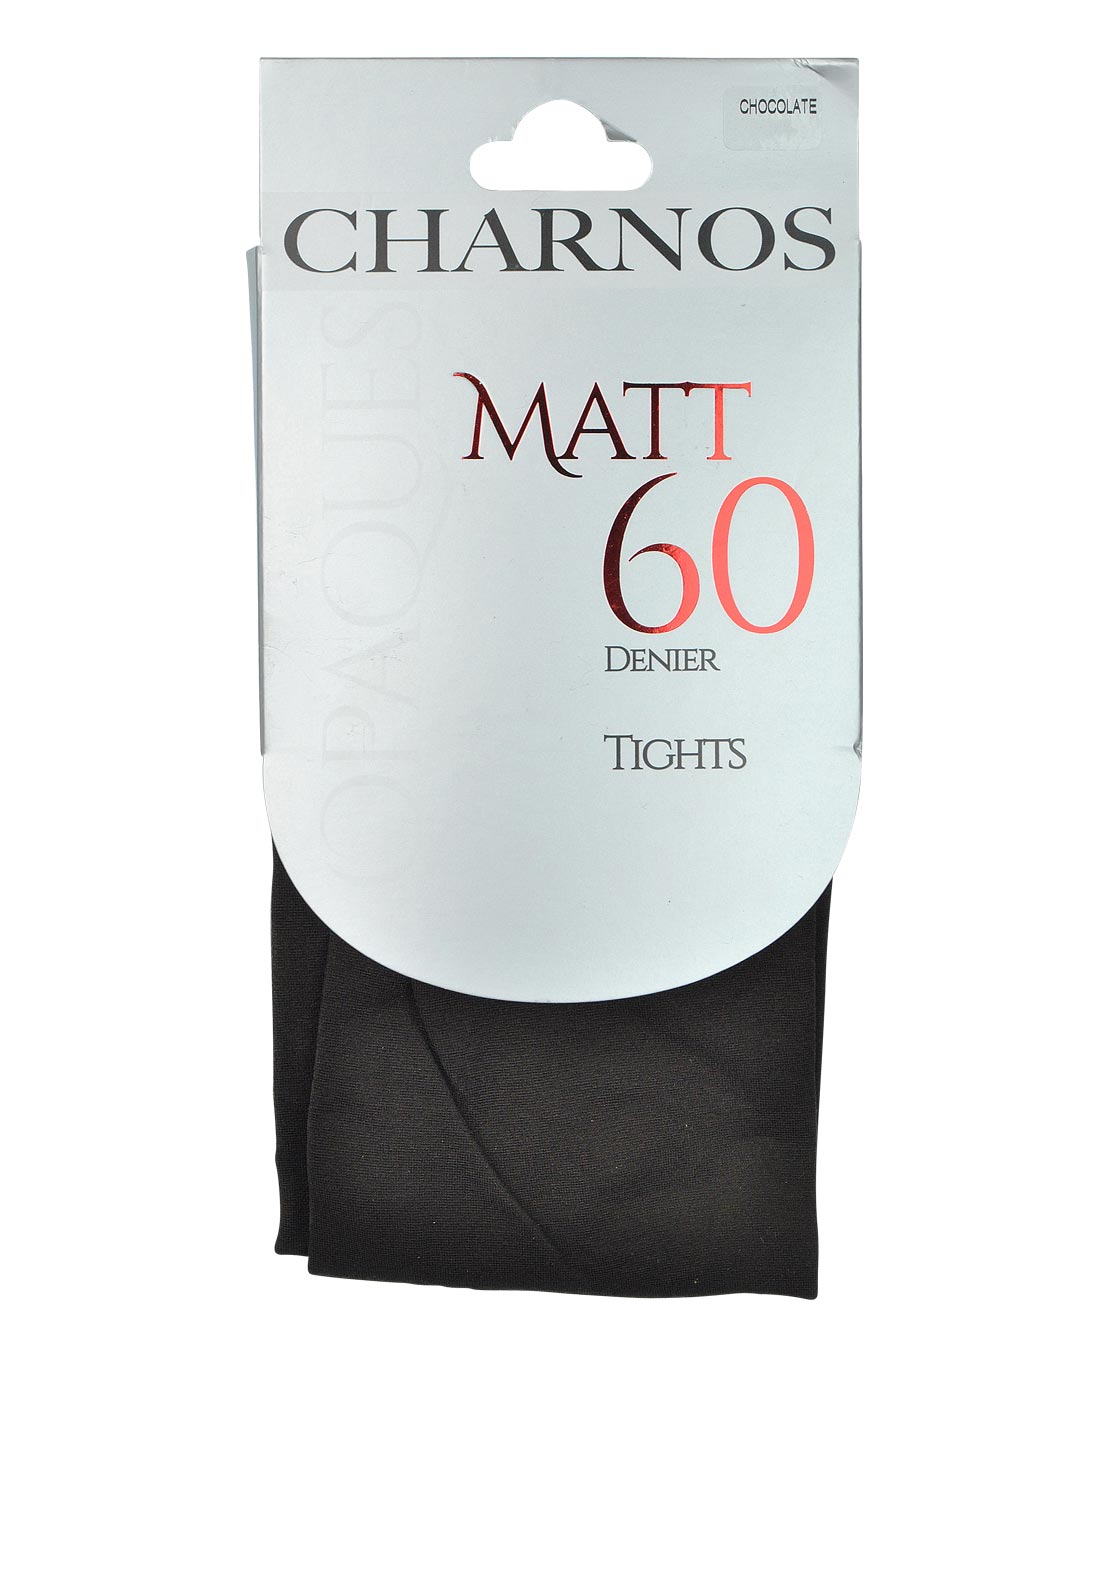 Charnos Opaques Matt 60 Denier Tights, Chocolate Brown